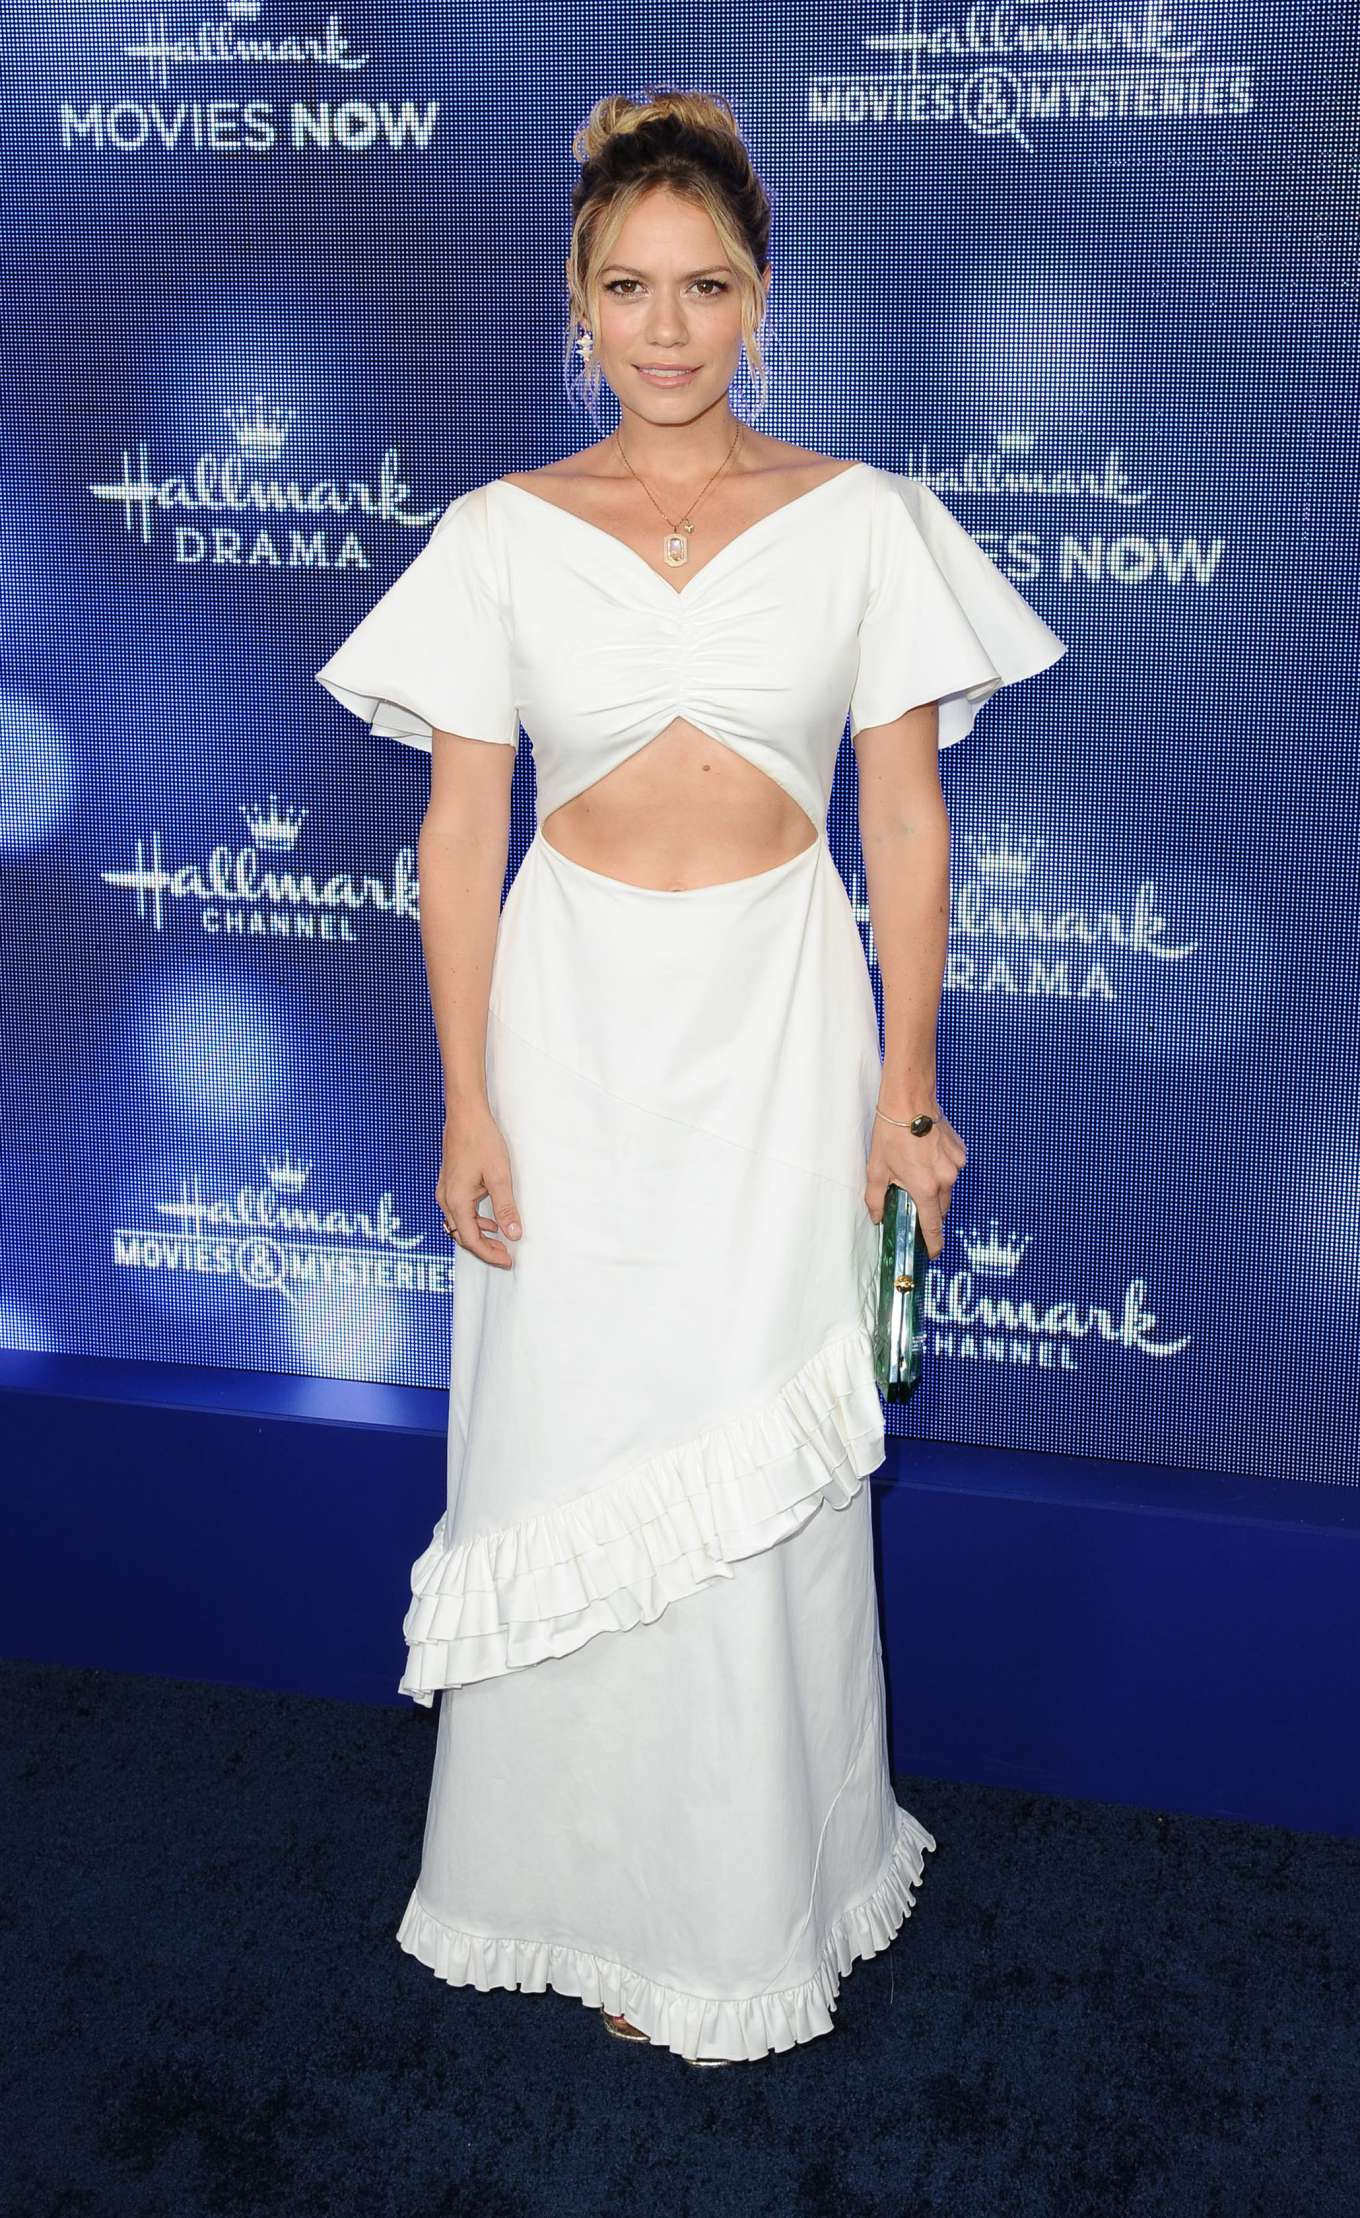 Bethany Joy Lenz 2019 : Bethany Joy Lenz – Hallmark Channel Summer 2019 TCA Event-08